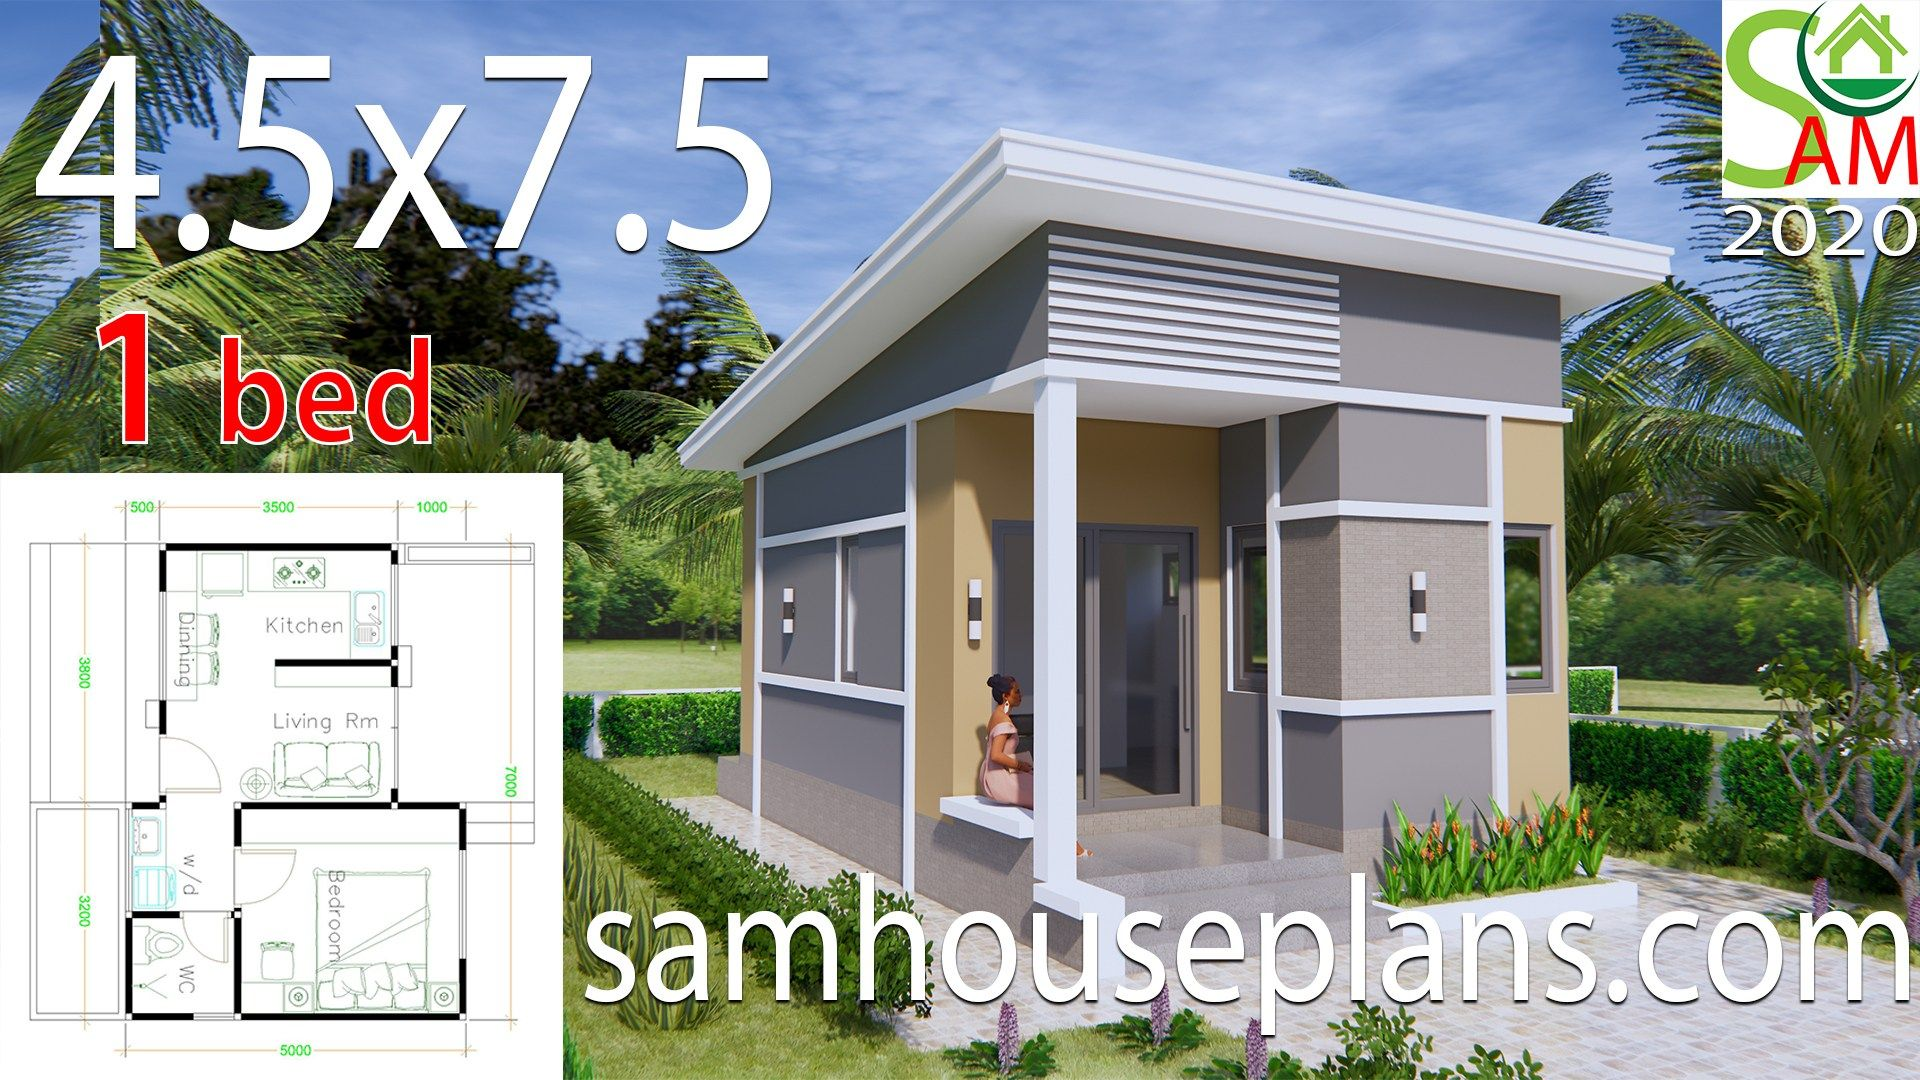 Small House Plans 4 5x7 5 With One Bedroom Shed Roof Sam House Plans Small House Design Small House Design Plans Small House Plans